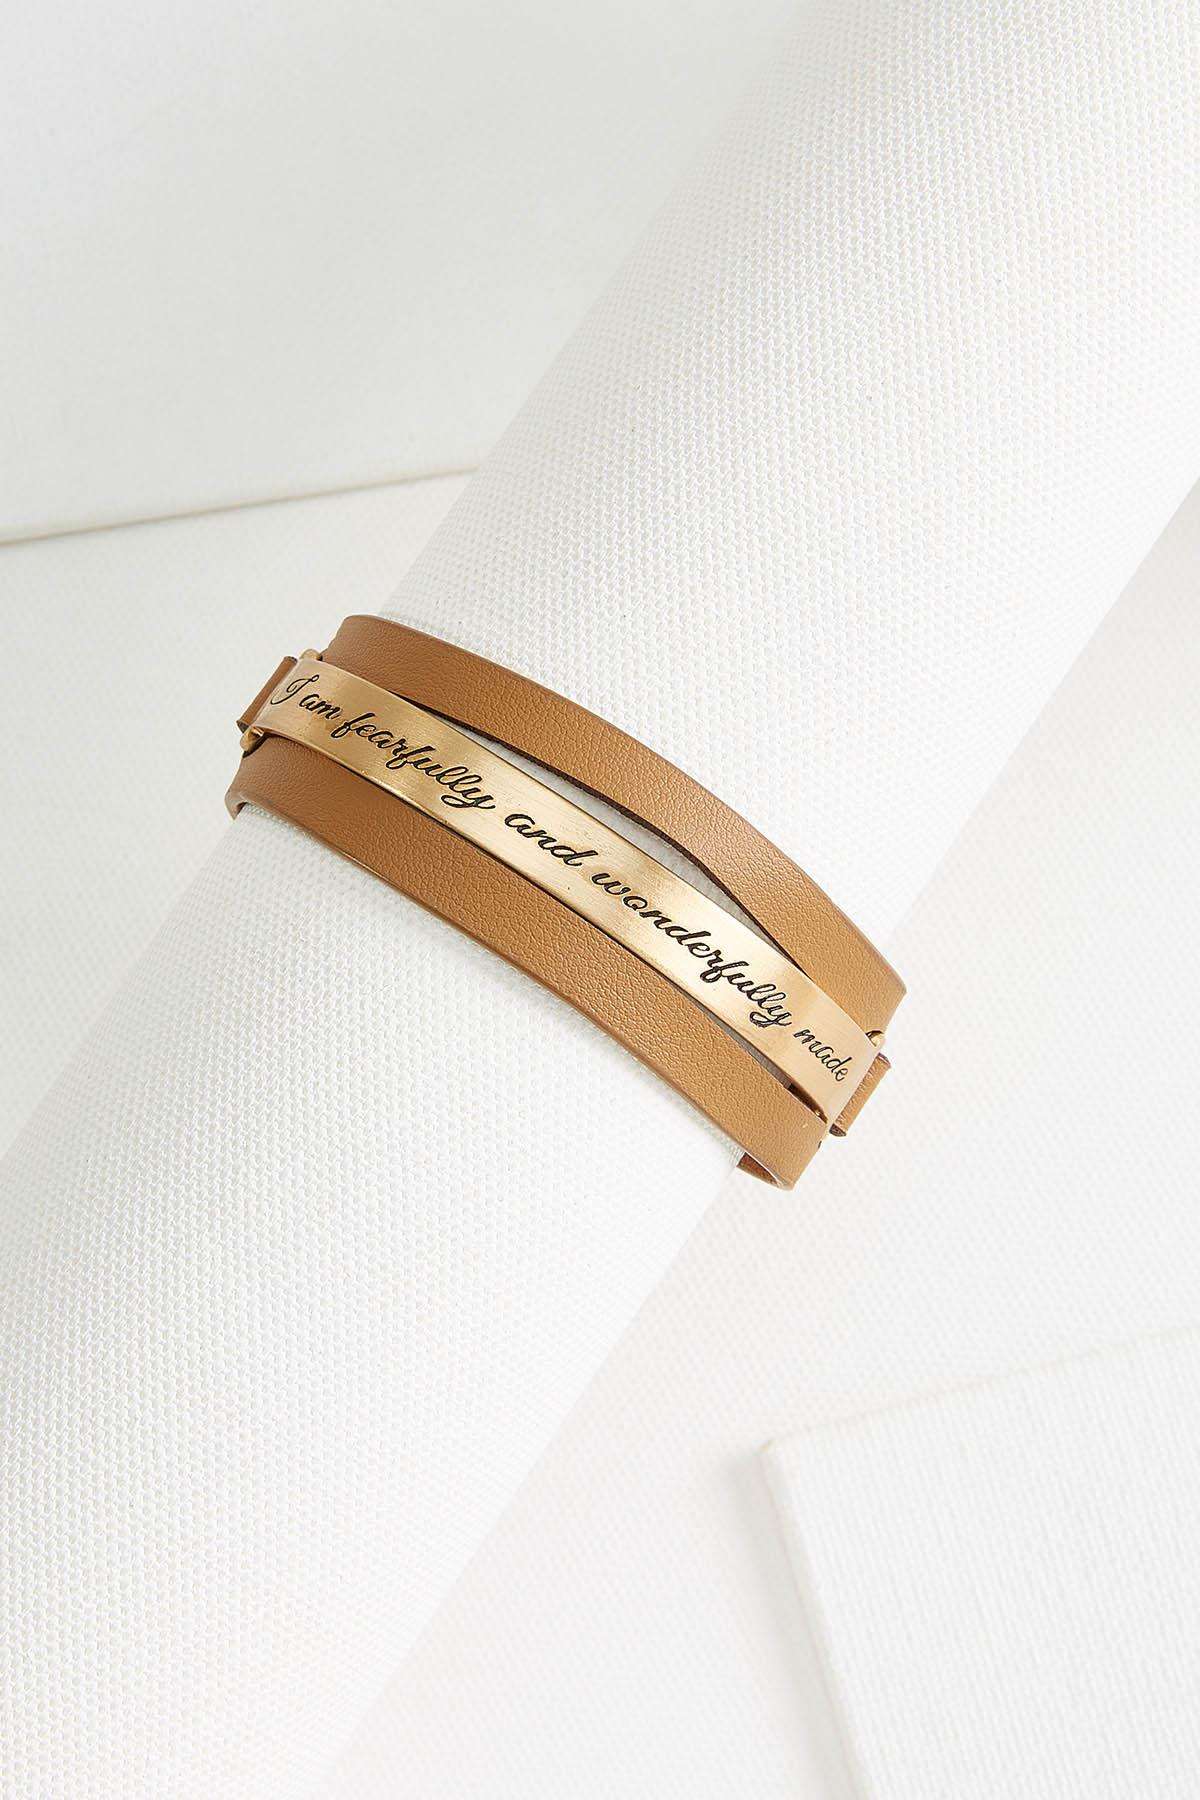 Fearfully Made Leather Bracelet